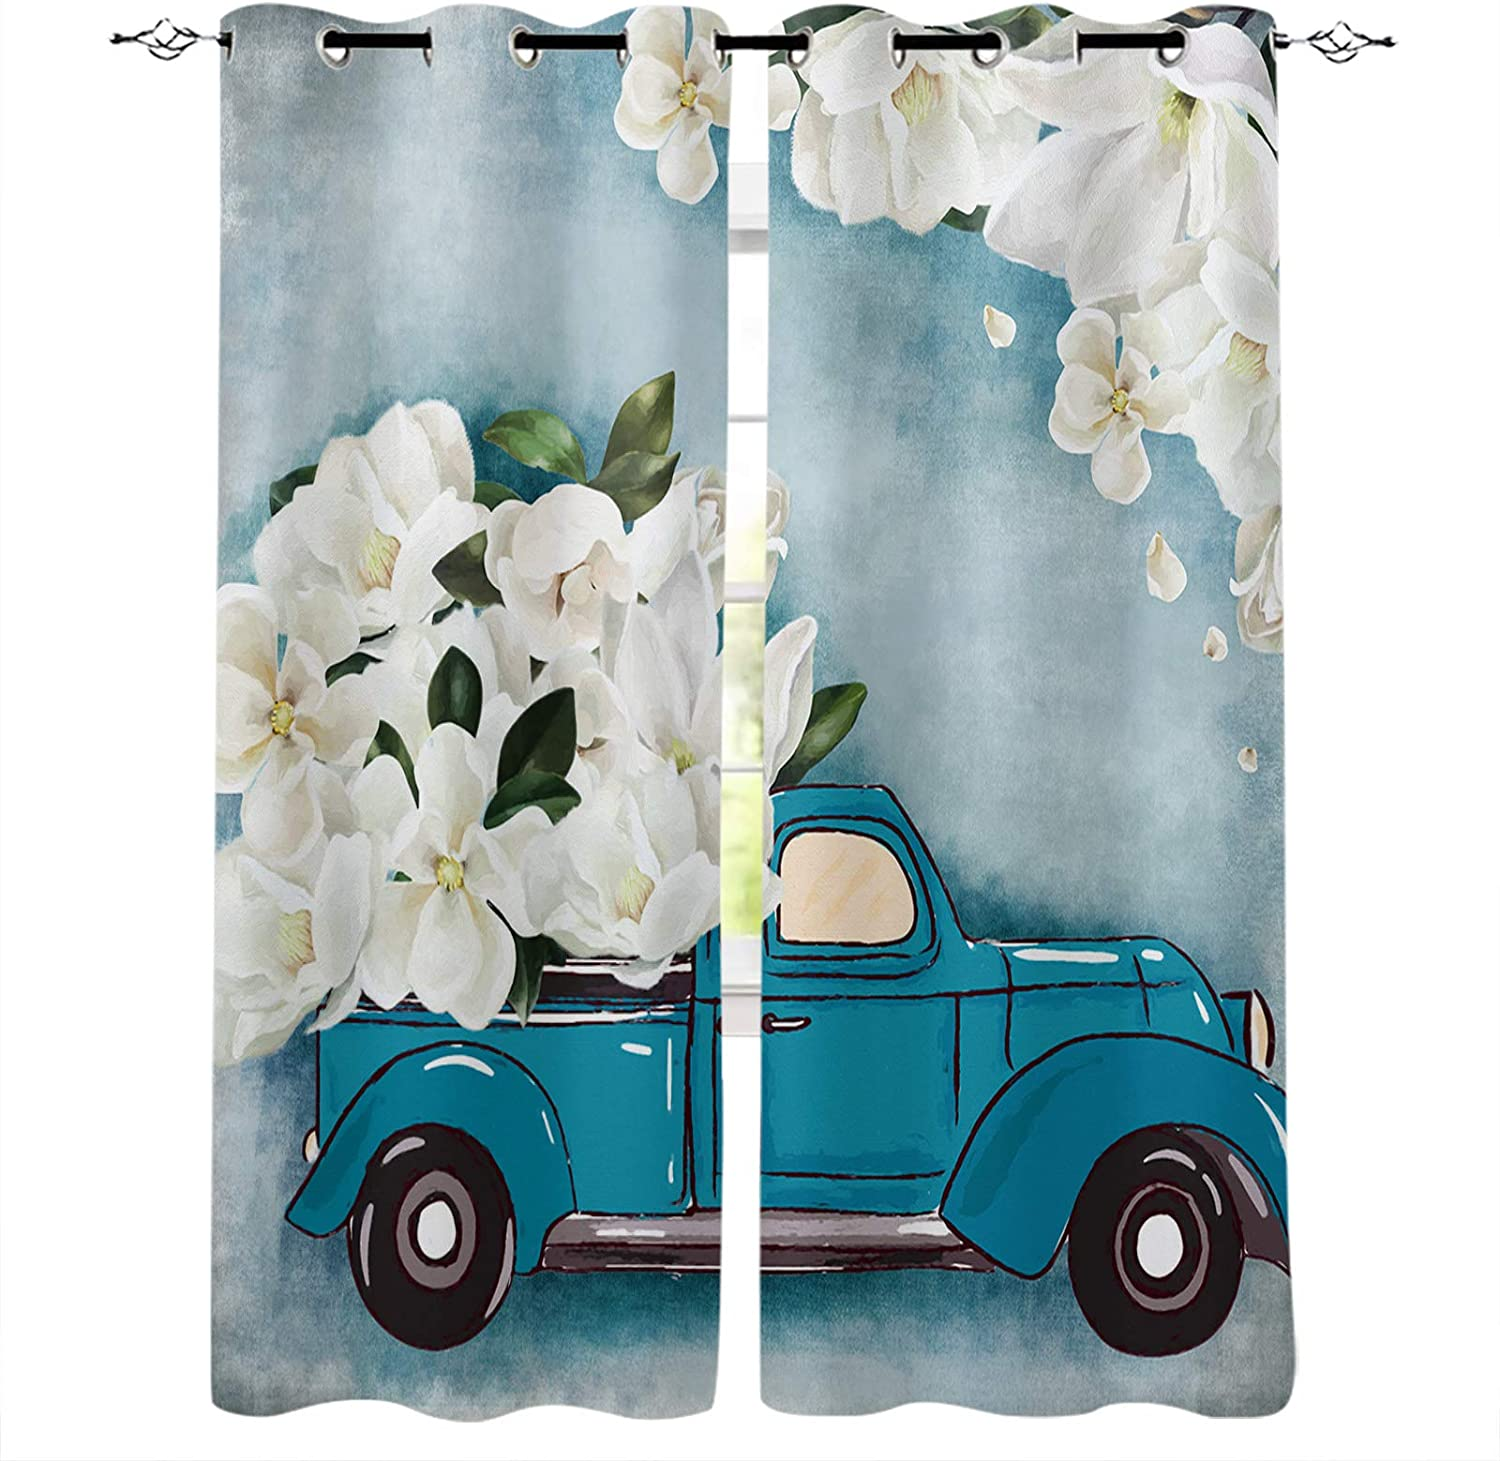 Blackout Curtains Attention brand for Bedroom Truck Flower White Blue Pain Daily bargain sale with